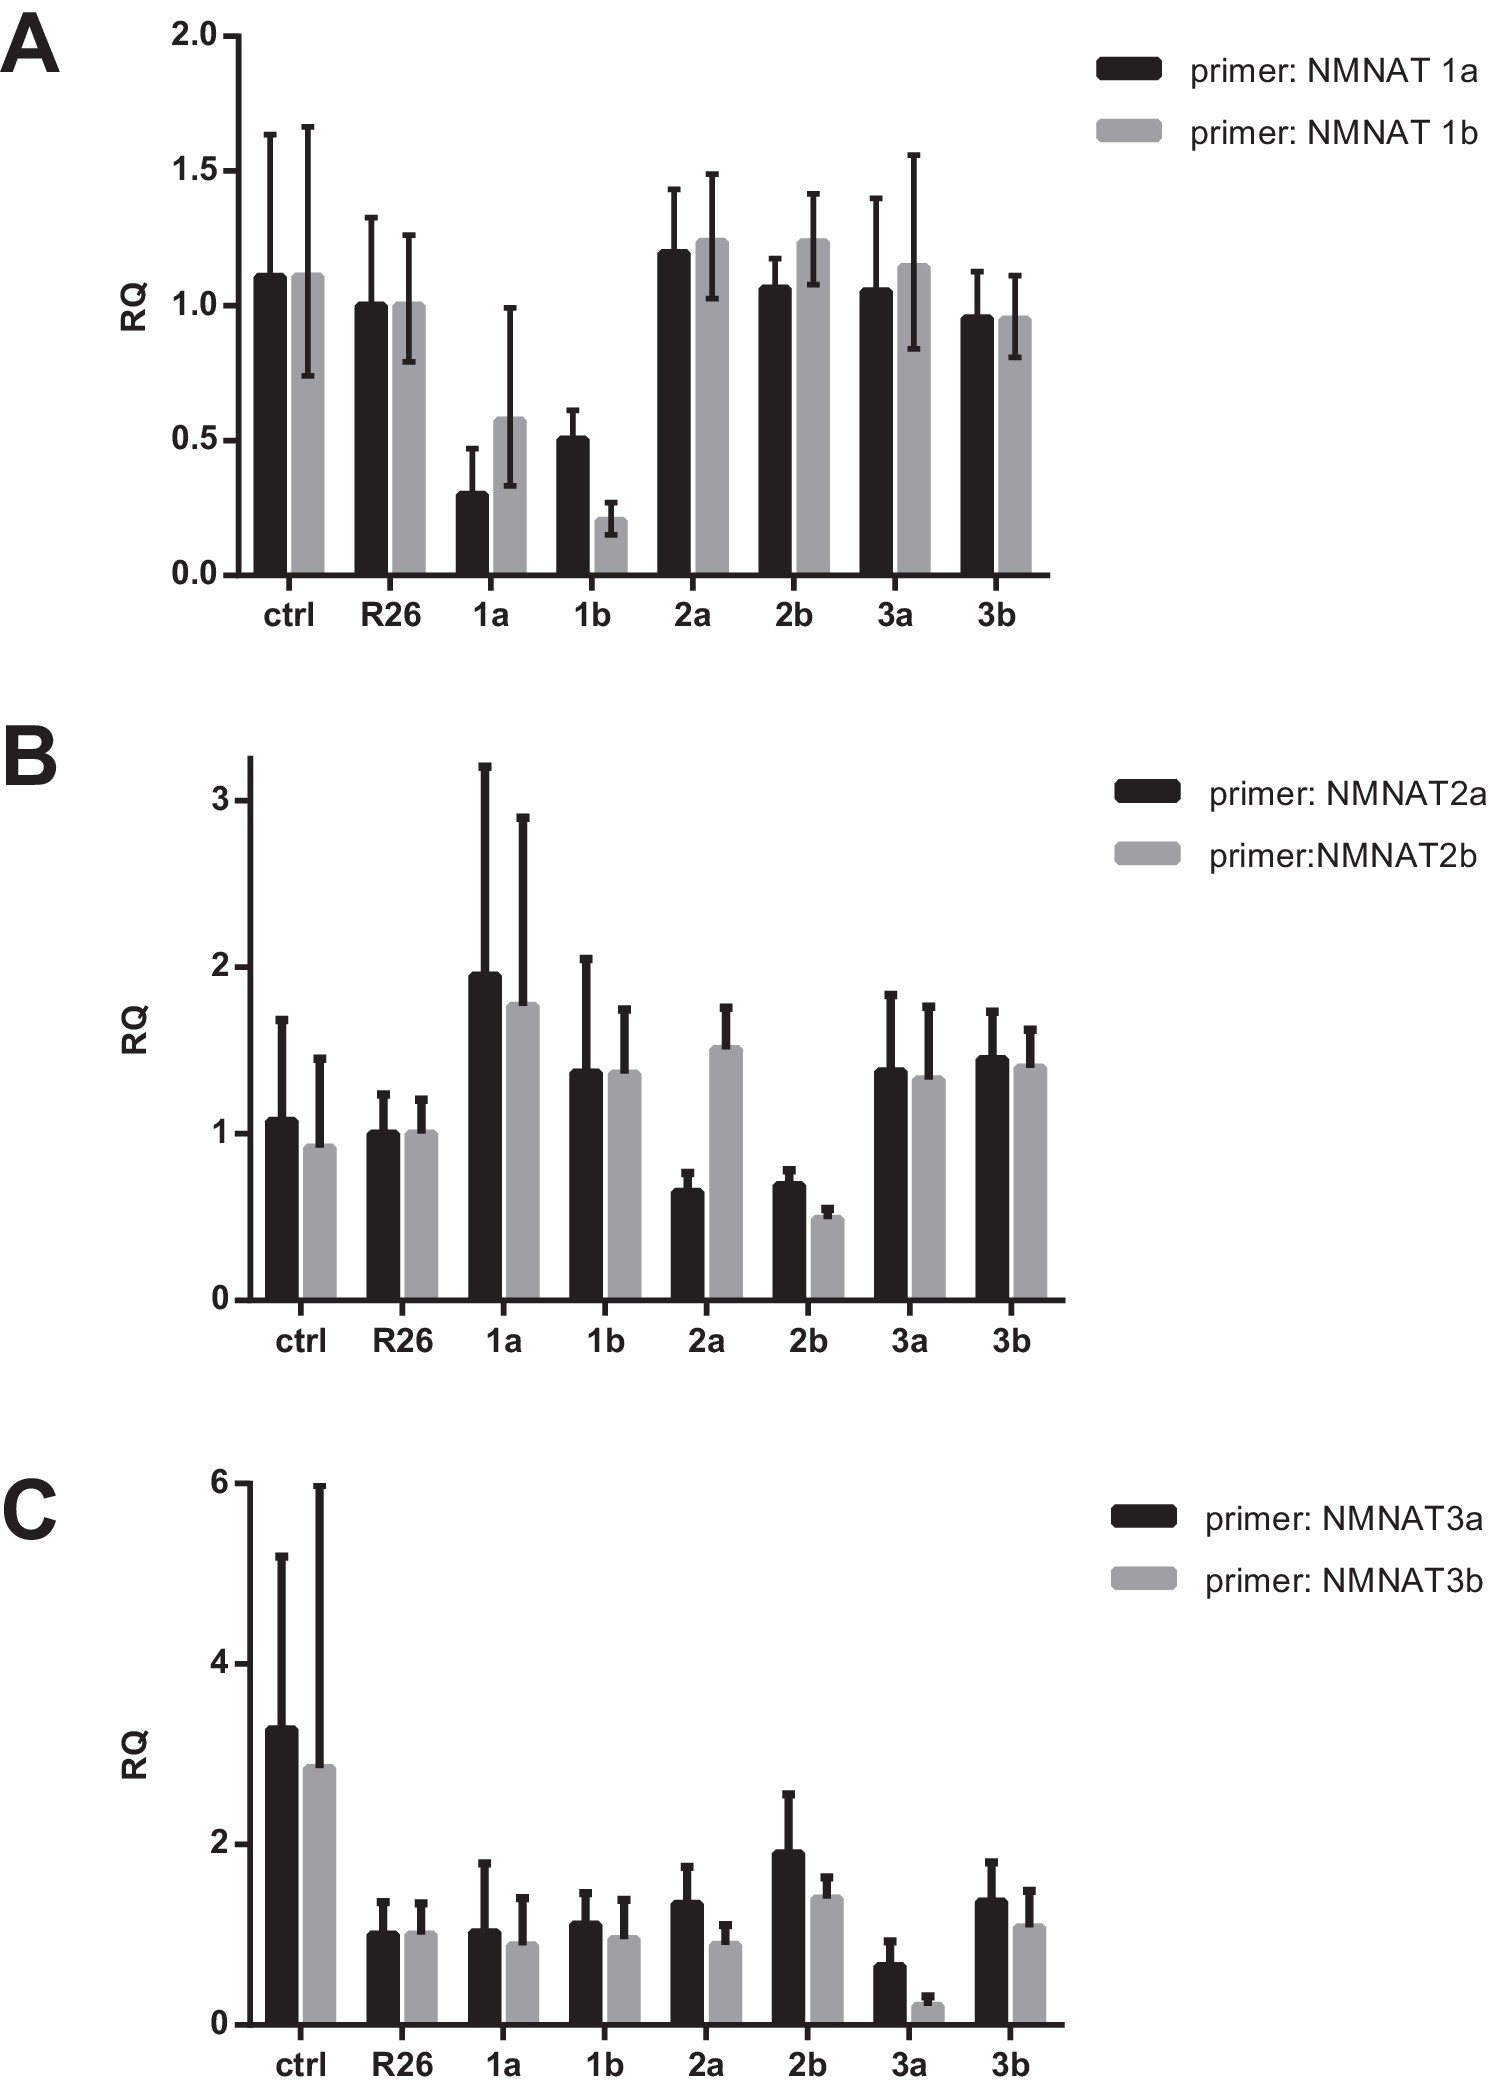 Figures and data in Nicotinamide adenine dinucleotide is